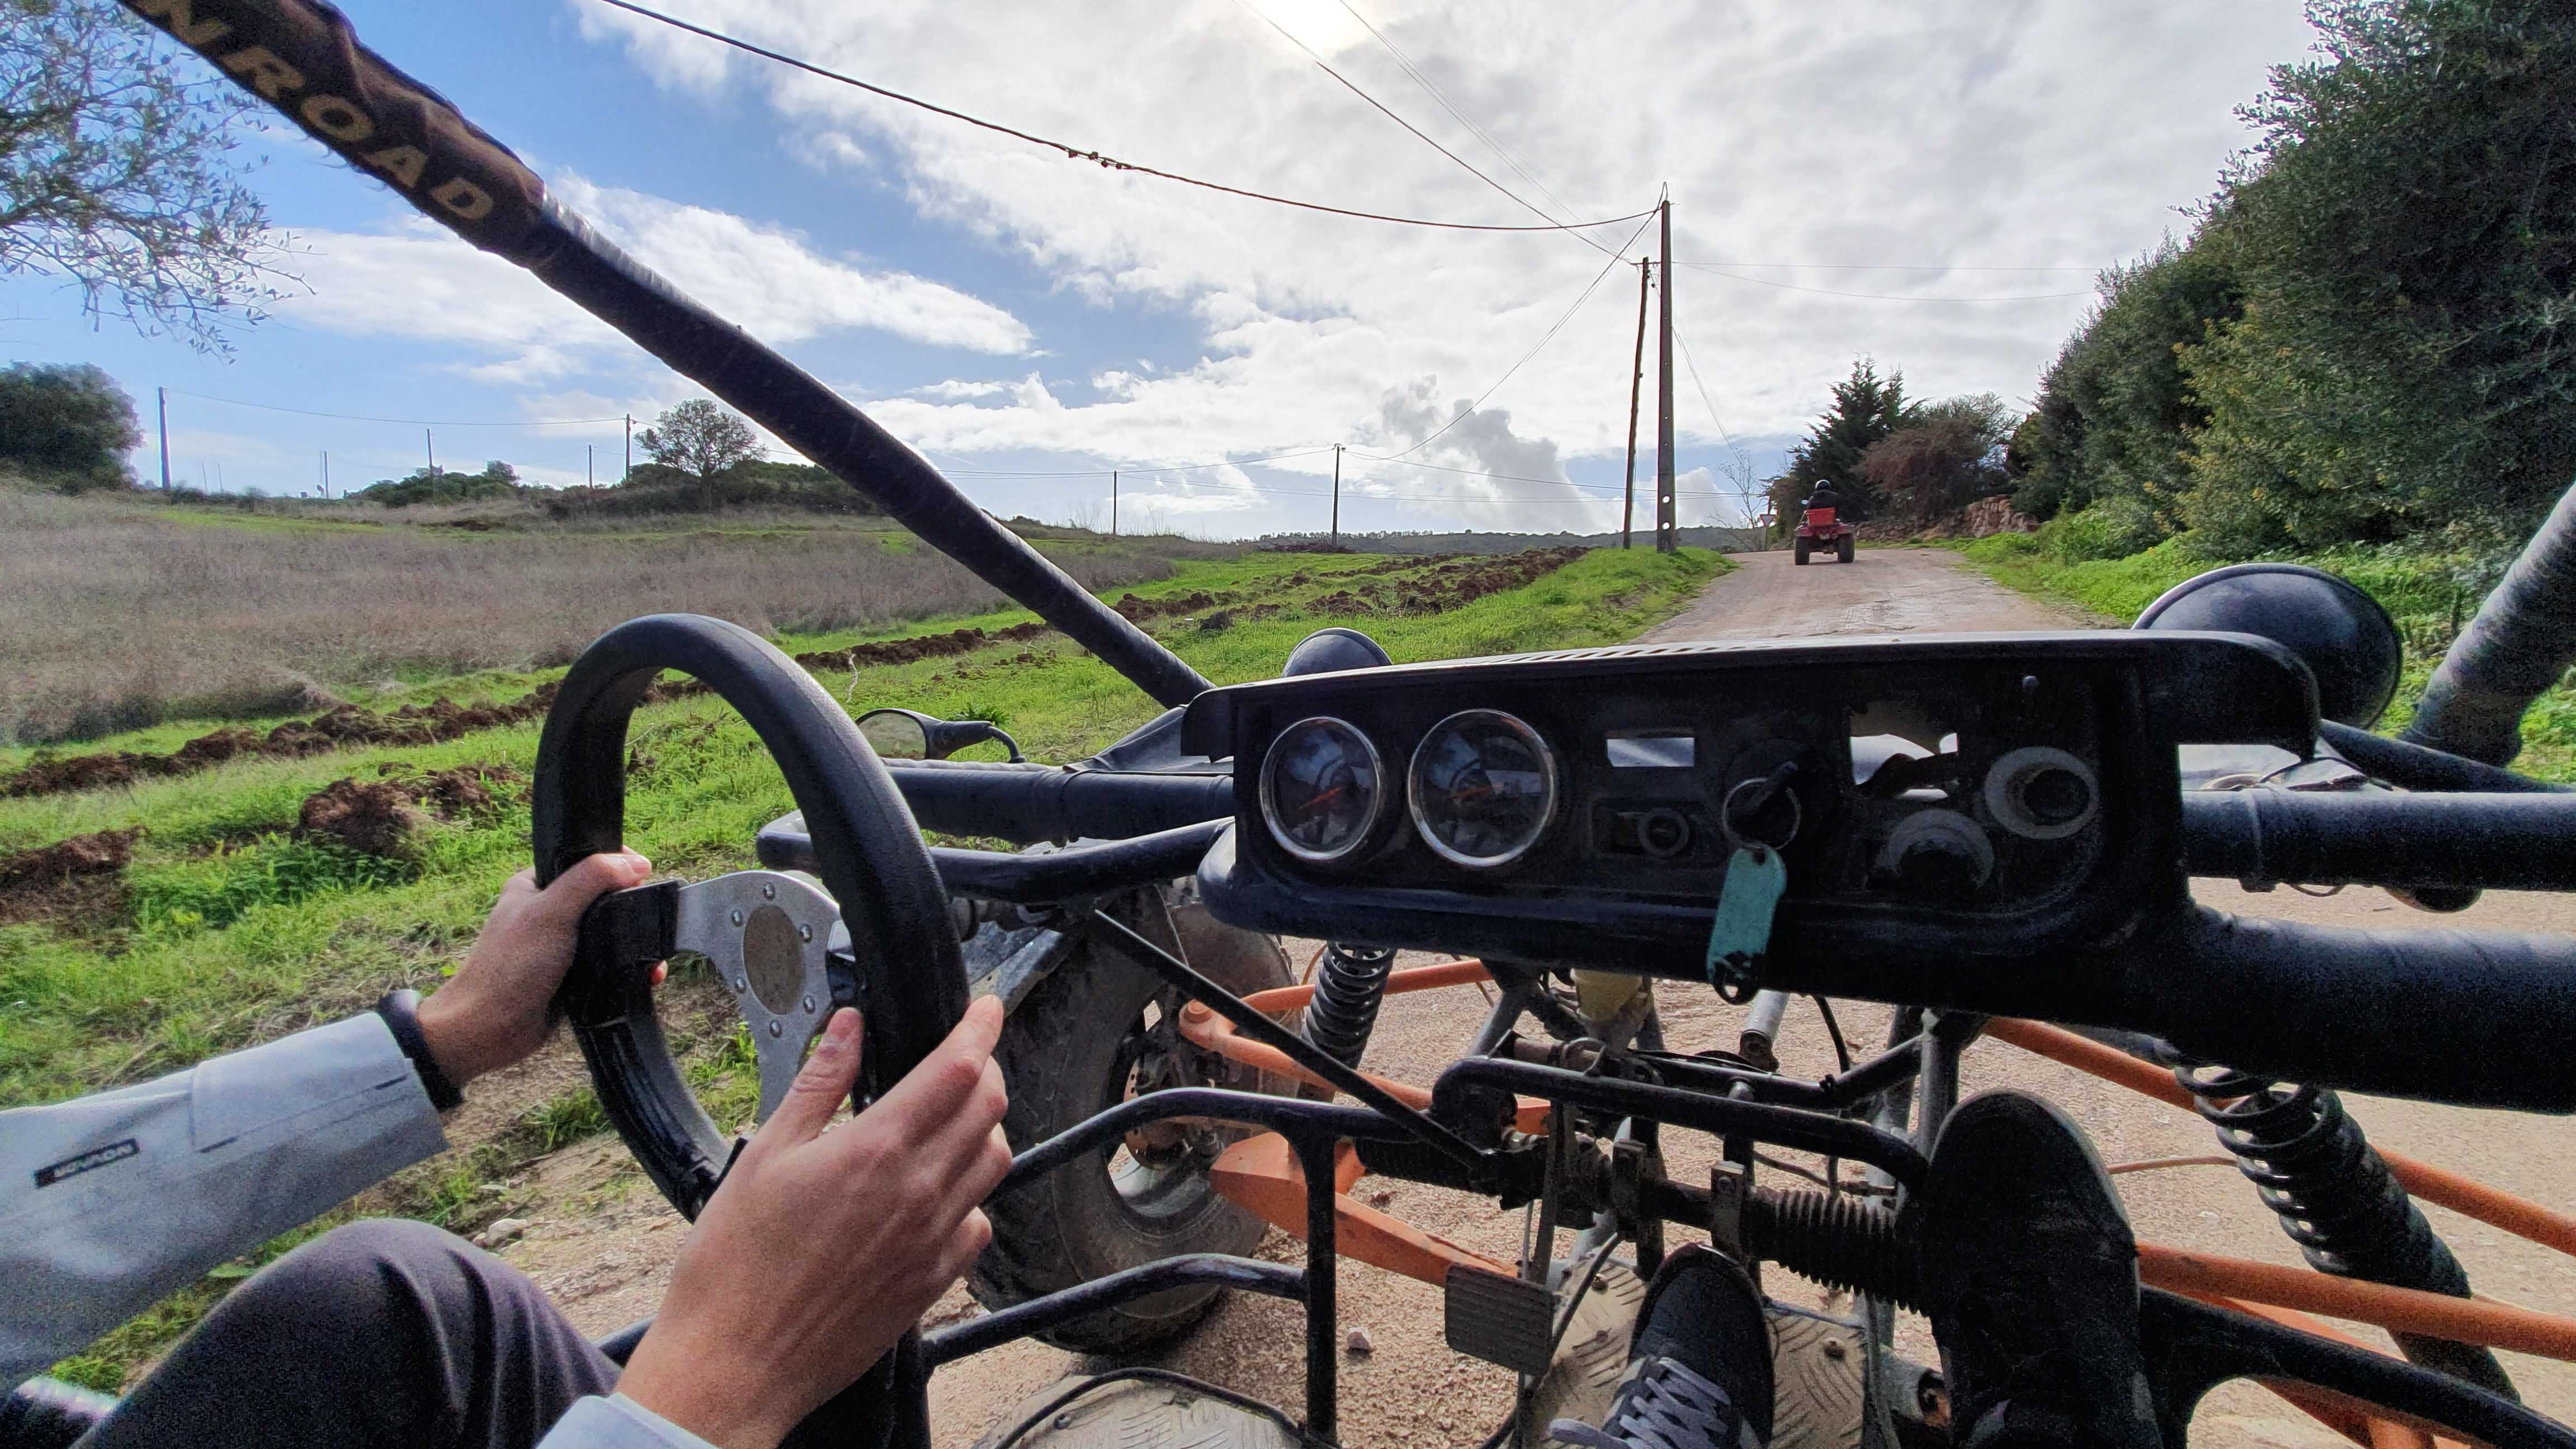 The picture is from one of the squad dynamics activities. It shows one person at the wheel of a car, driving on a road in the middle of a country.